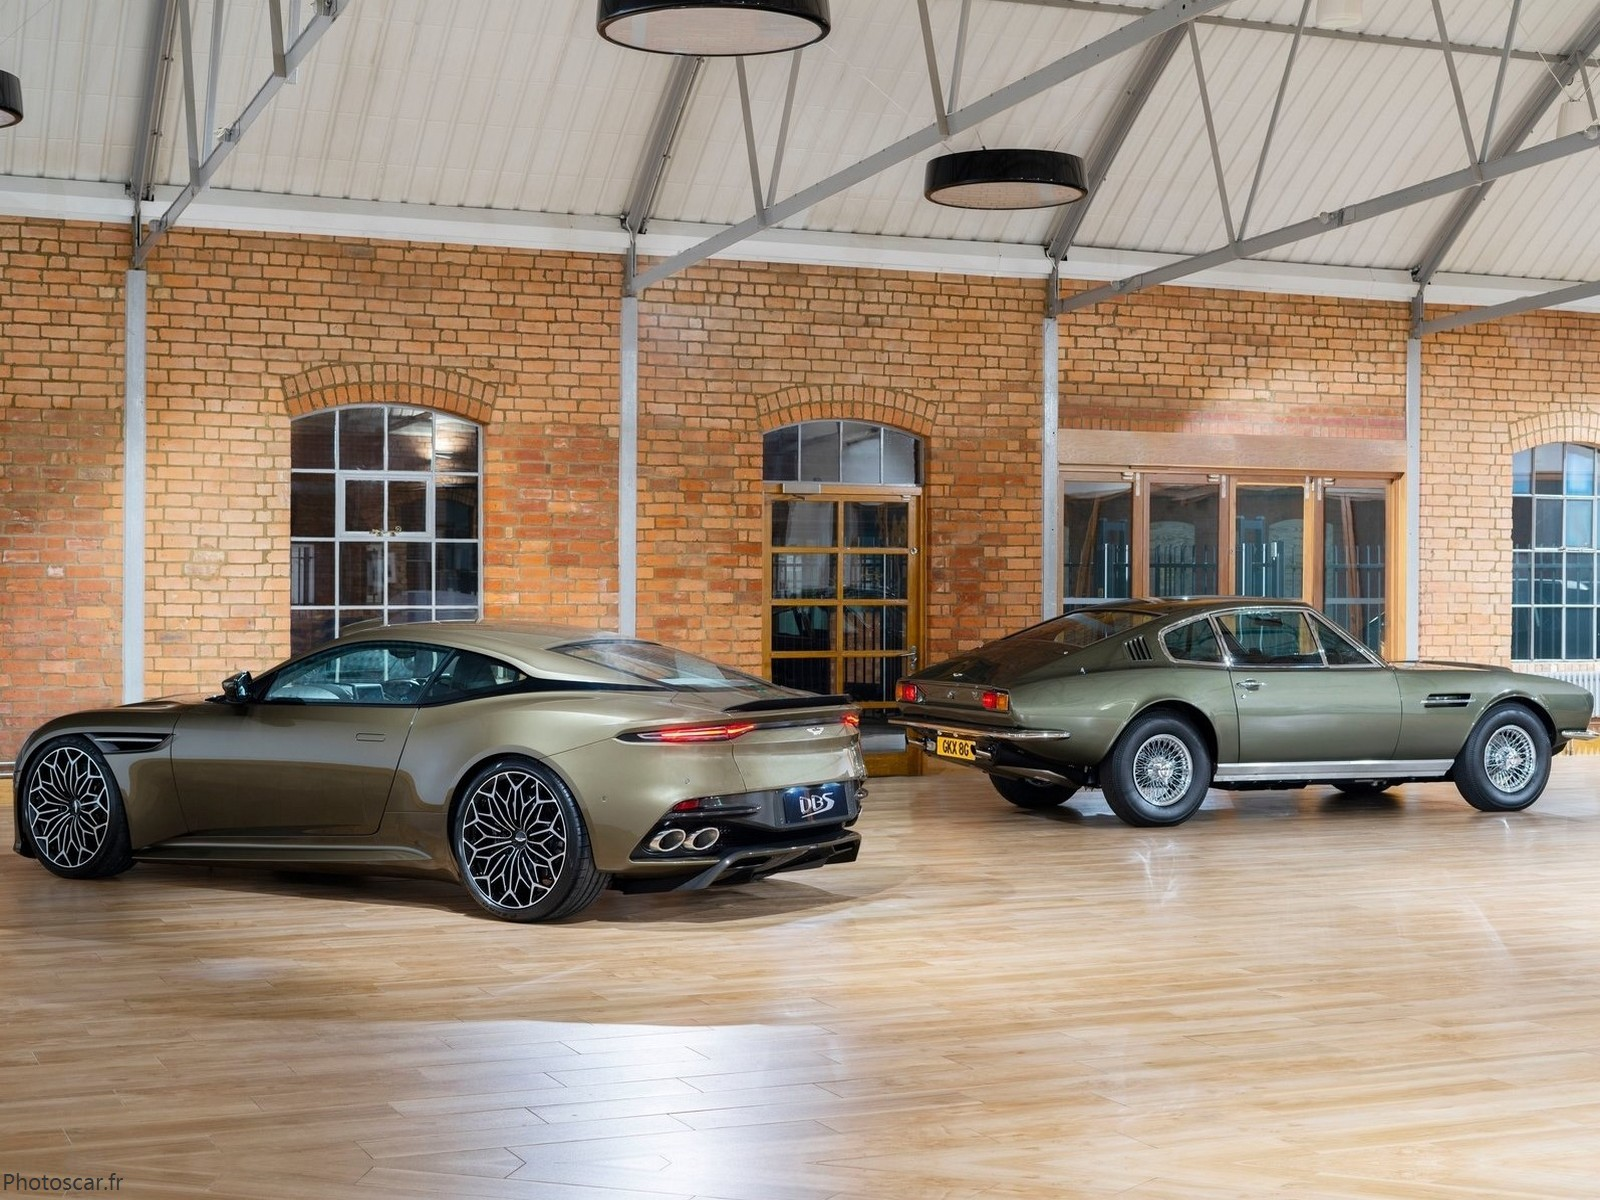 Aston_Martin DBS_Superleggera OHMSS Edition 2019